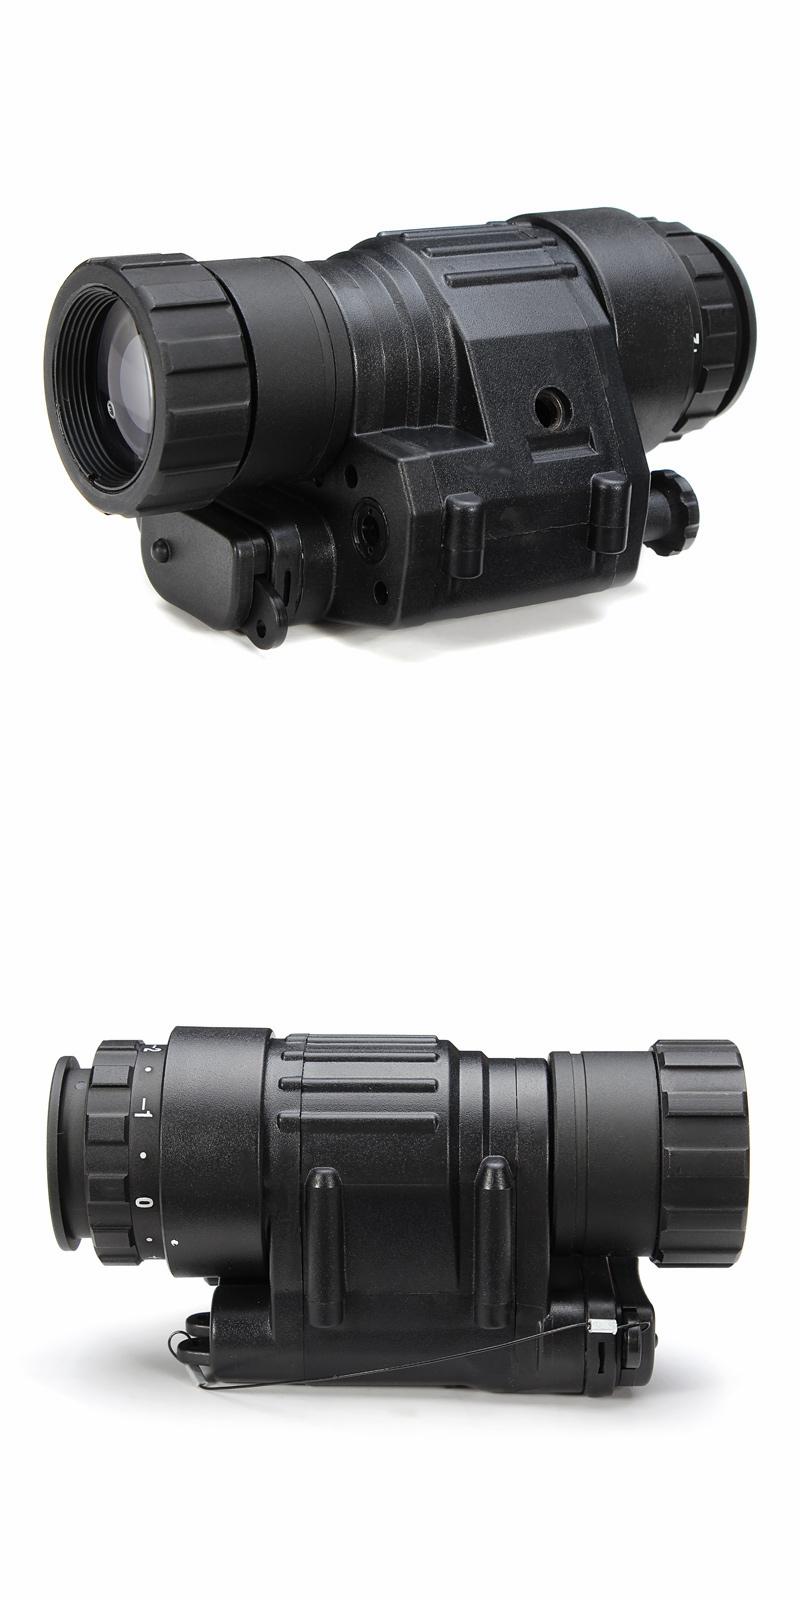 IPRee 2x30 Digital Night Vision Device Helmet HD Telescope American Monocular